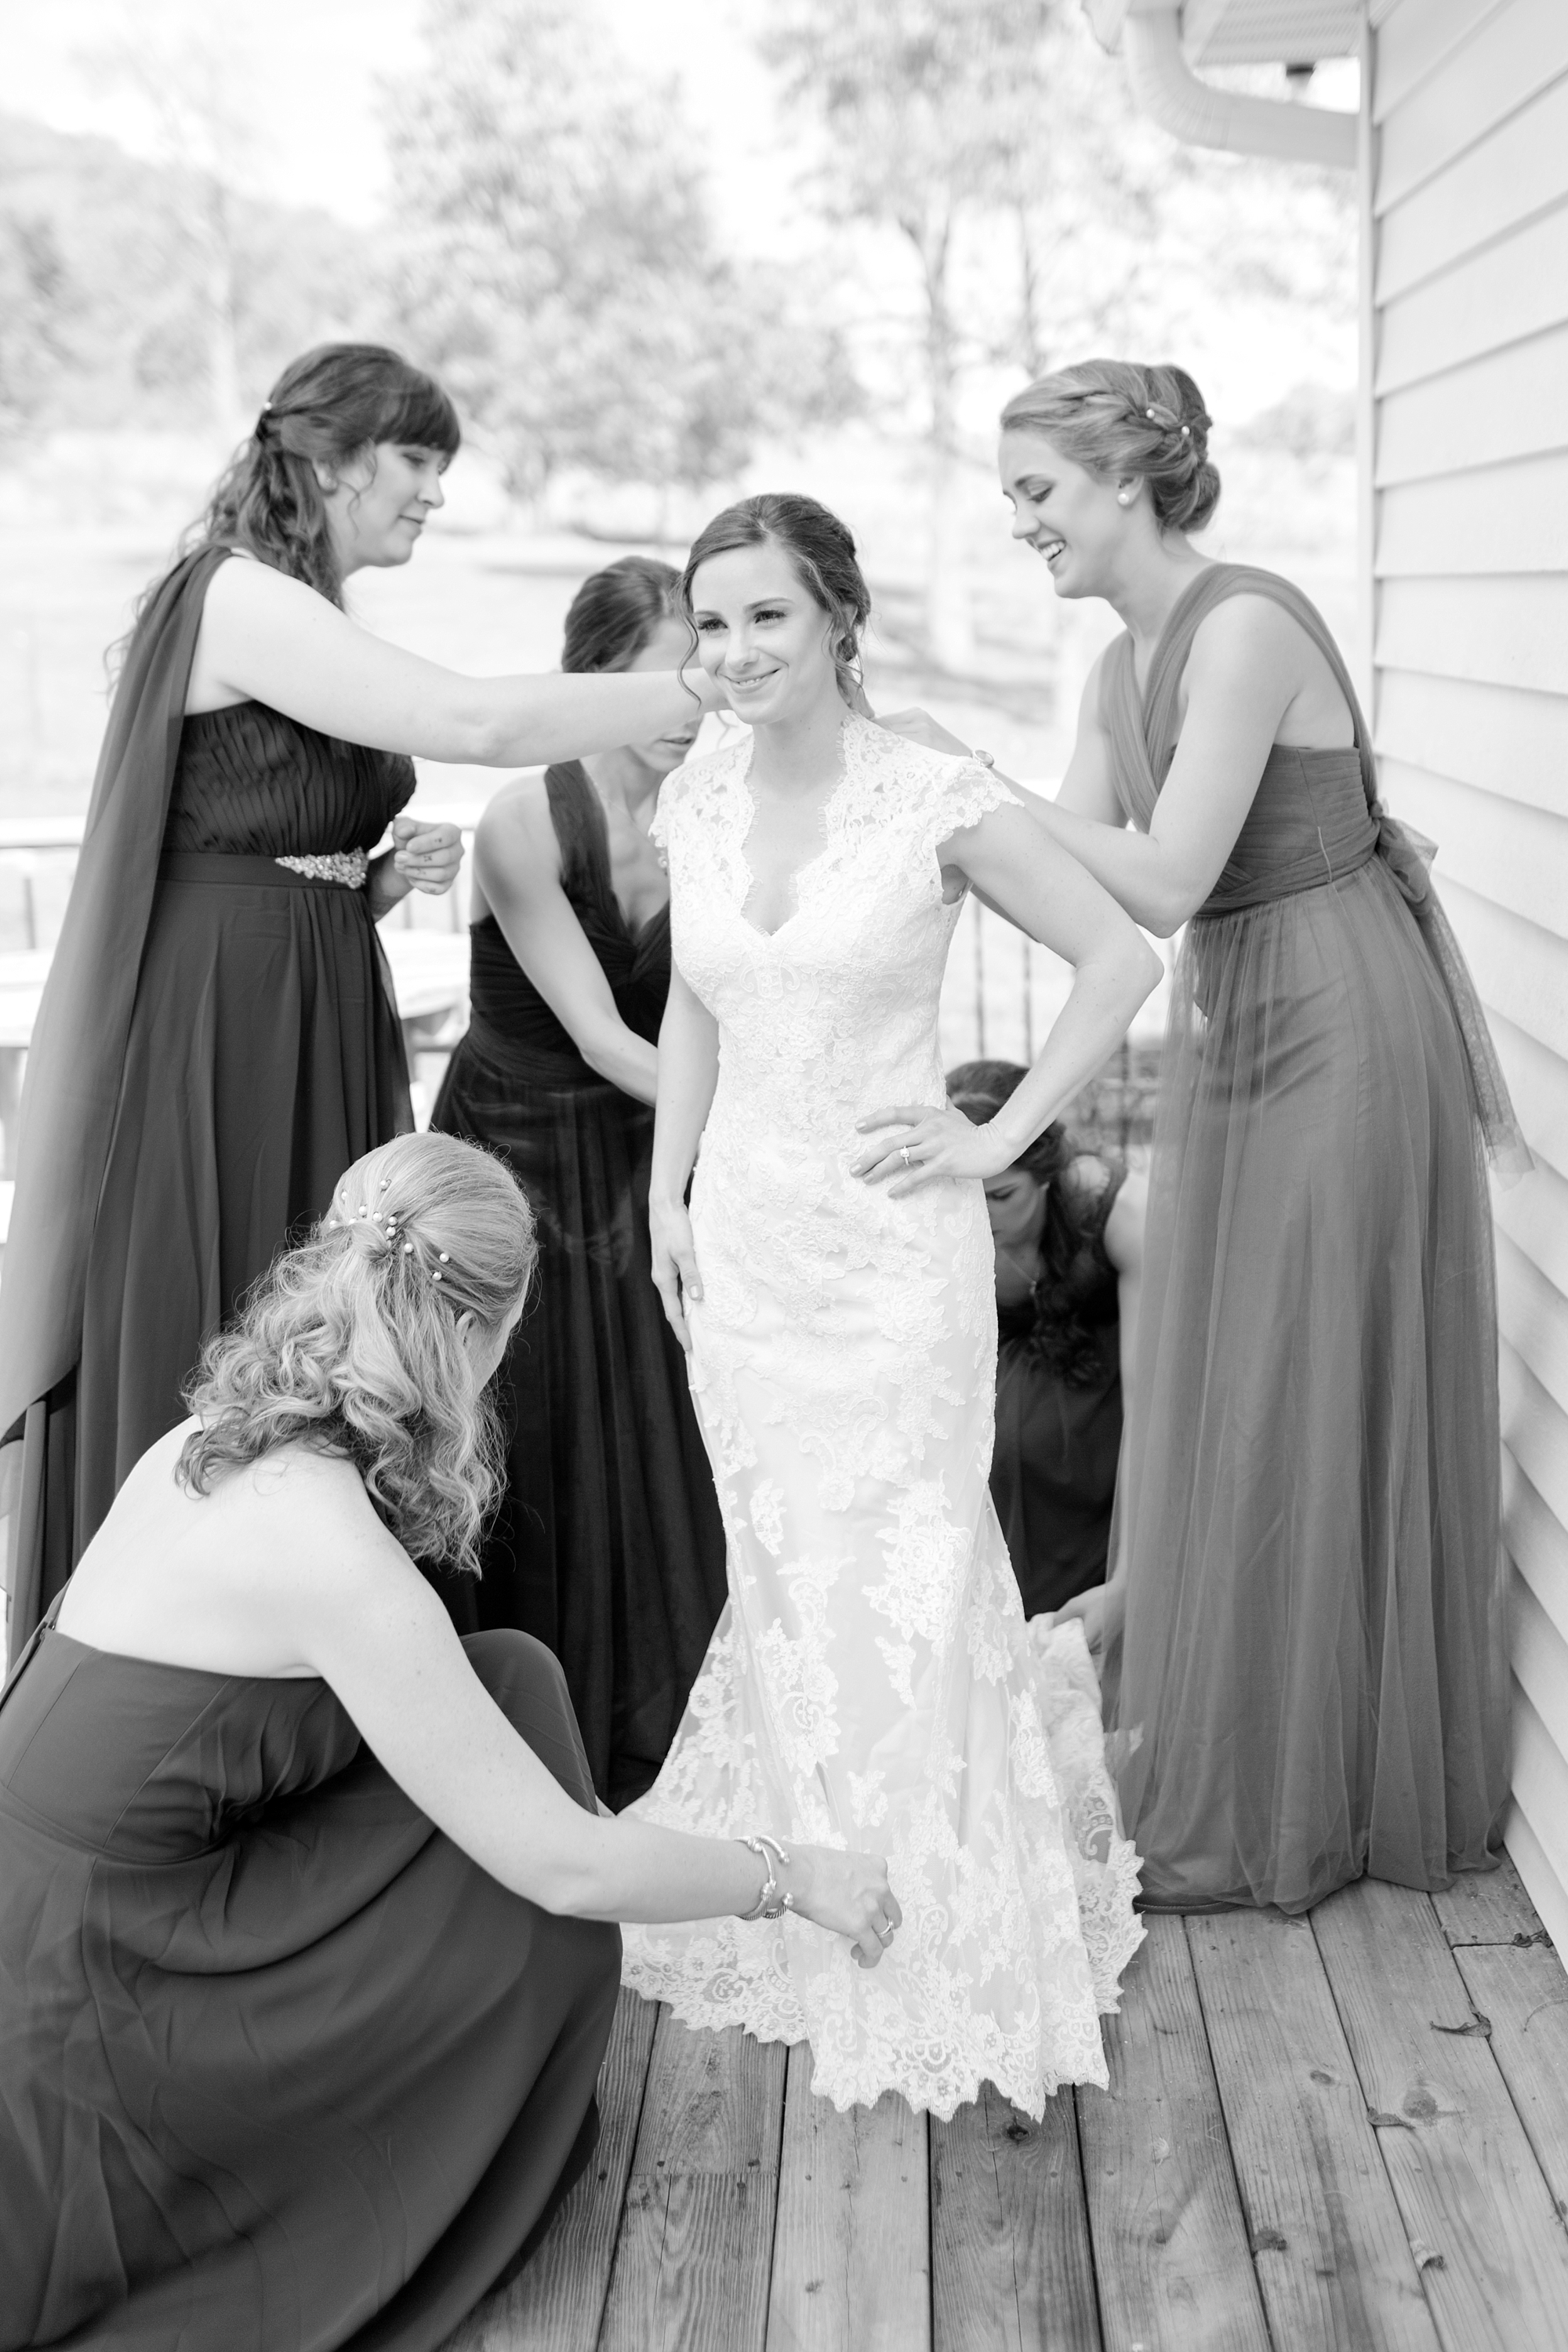 Bird 1. Getting Ready-145_anna grace photography baltimore maryland wedding photographer chanteclaire wedding photo.jpg